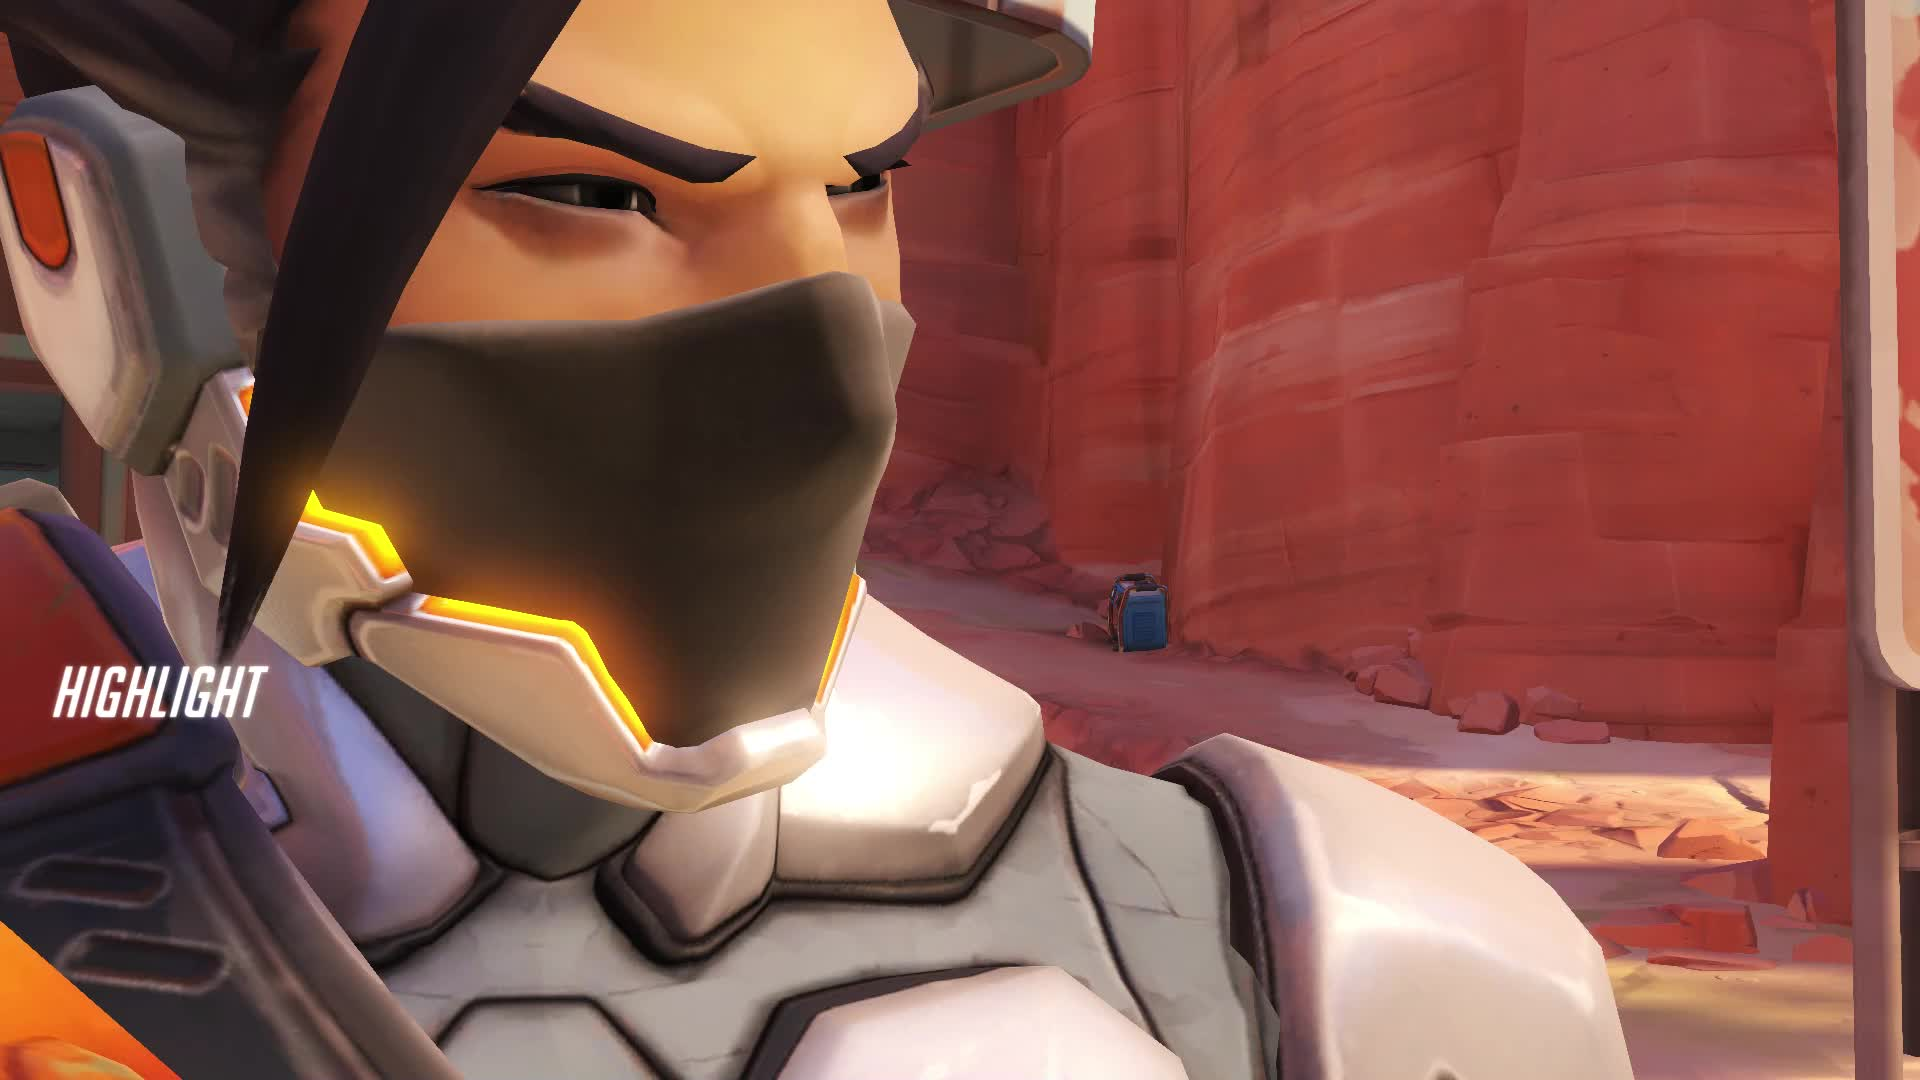 Pog, hanzo, overwatch, play of the game, potg, yolo clutch dragon GIFs